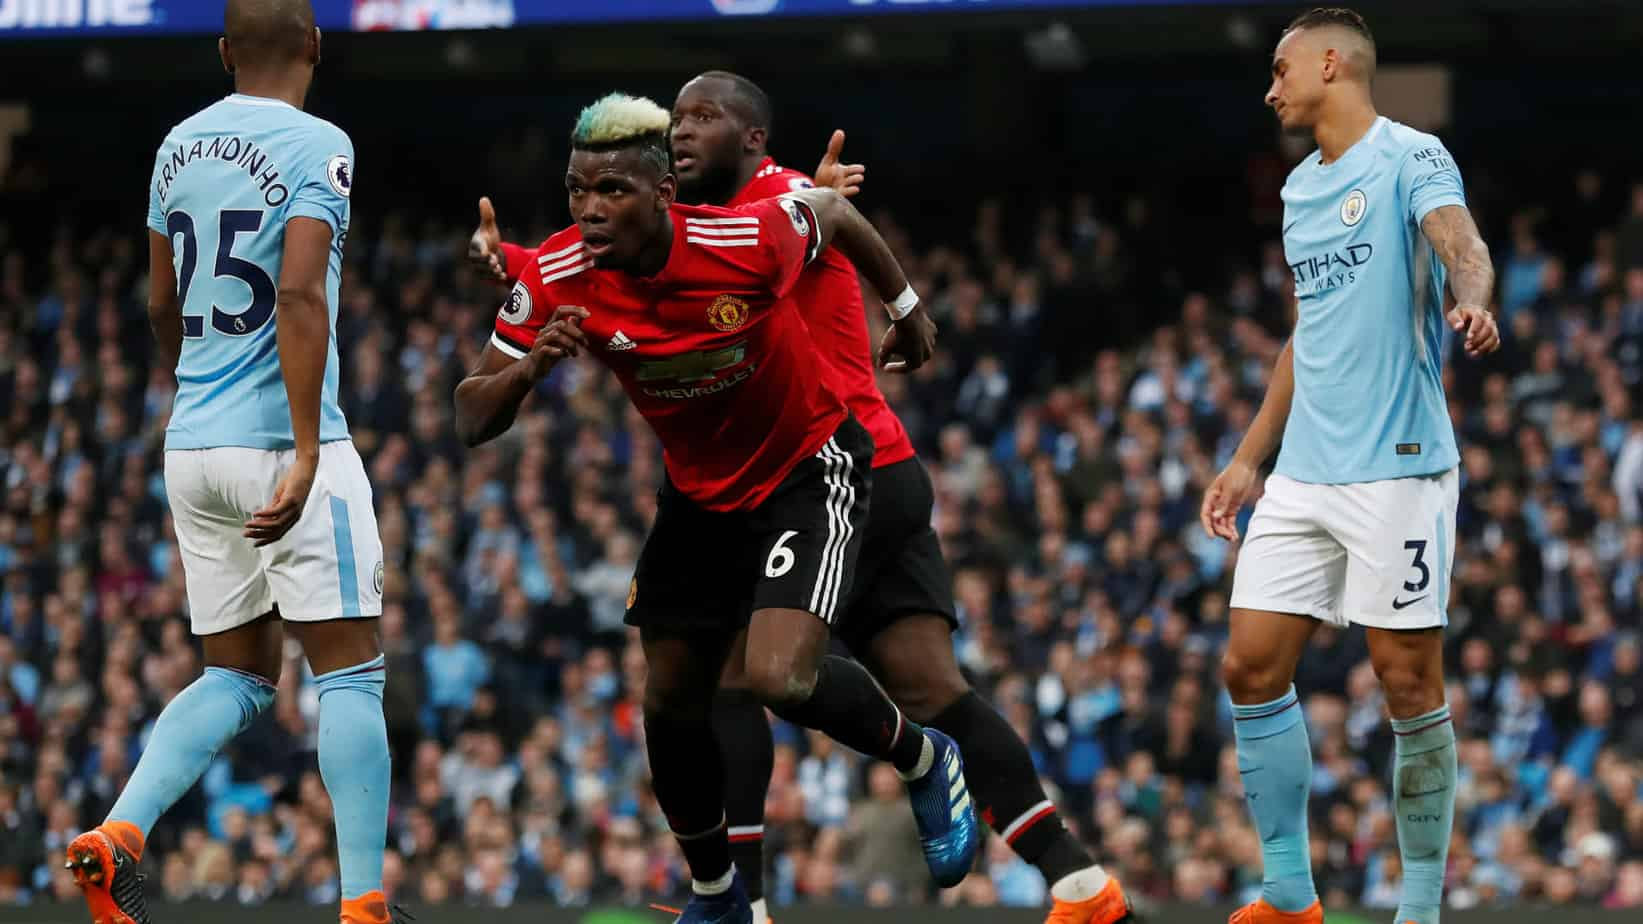 United defeat City in Manchester derby